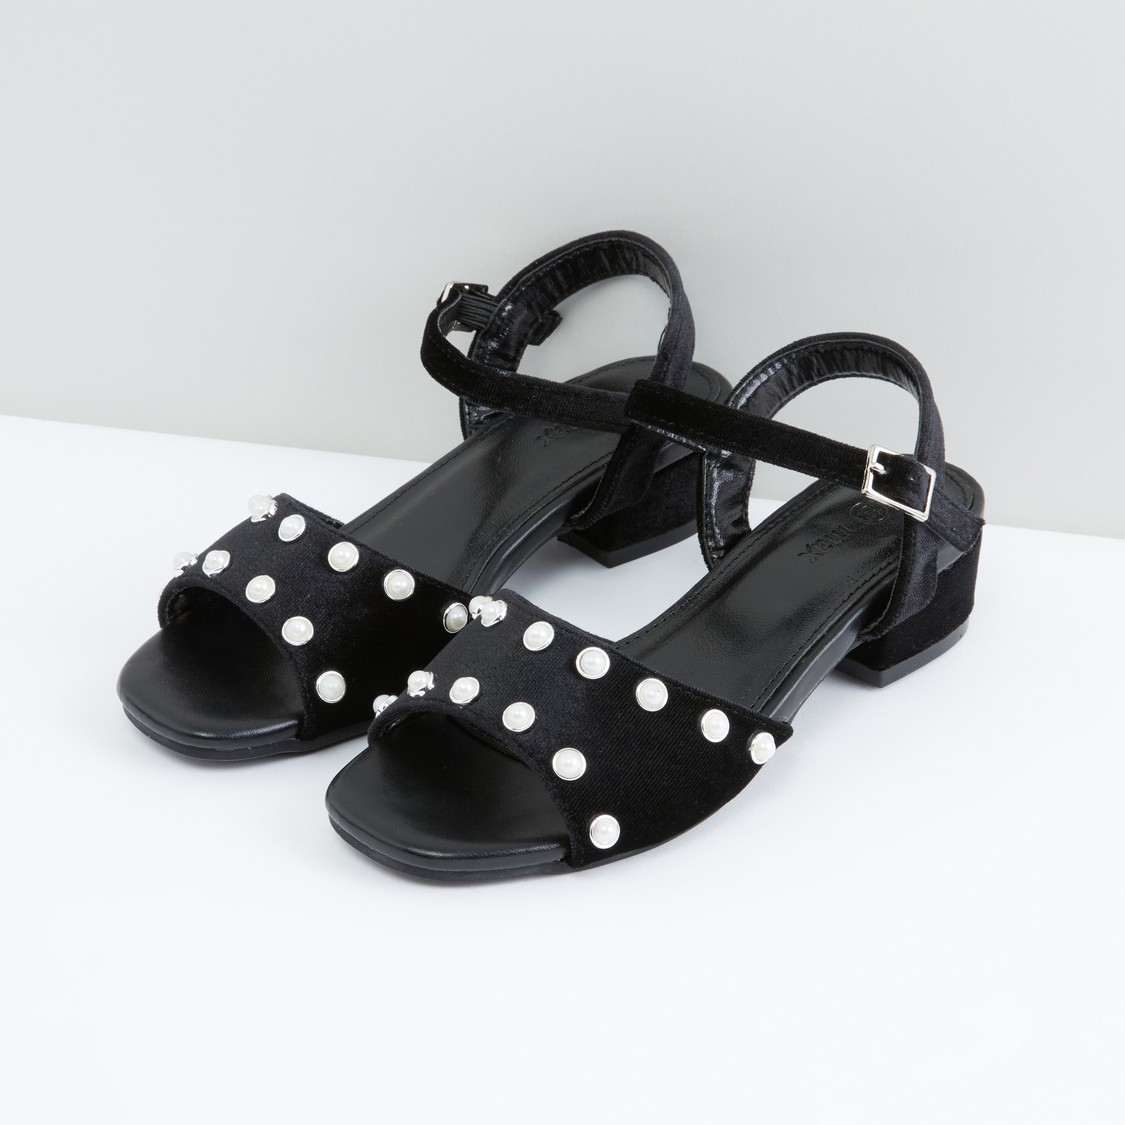 Pearl Detail Sandals with Ankle Strap and Pin Buckle Closure